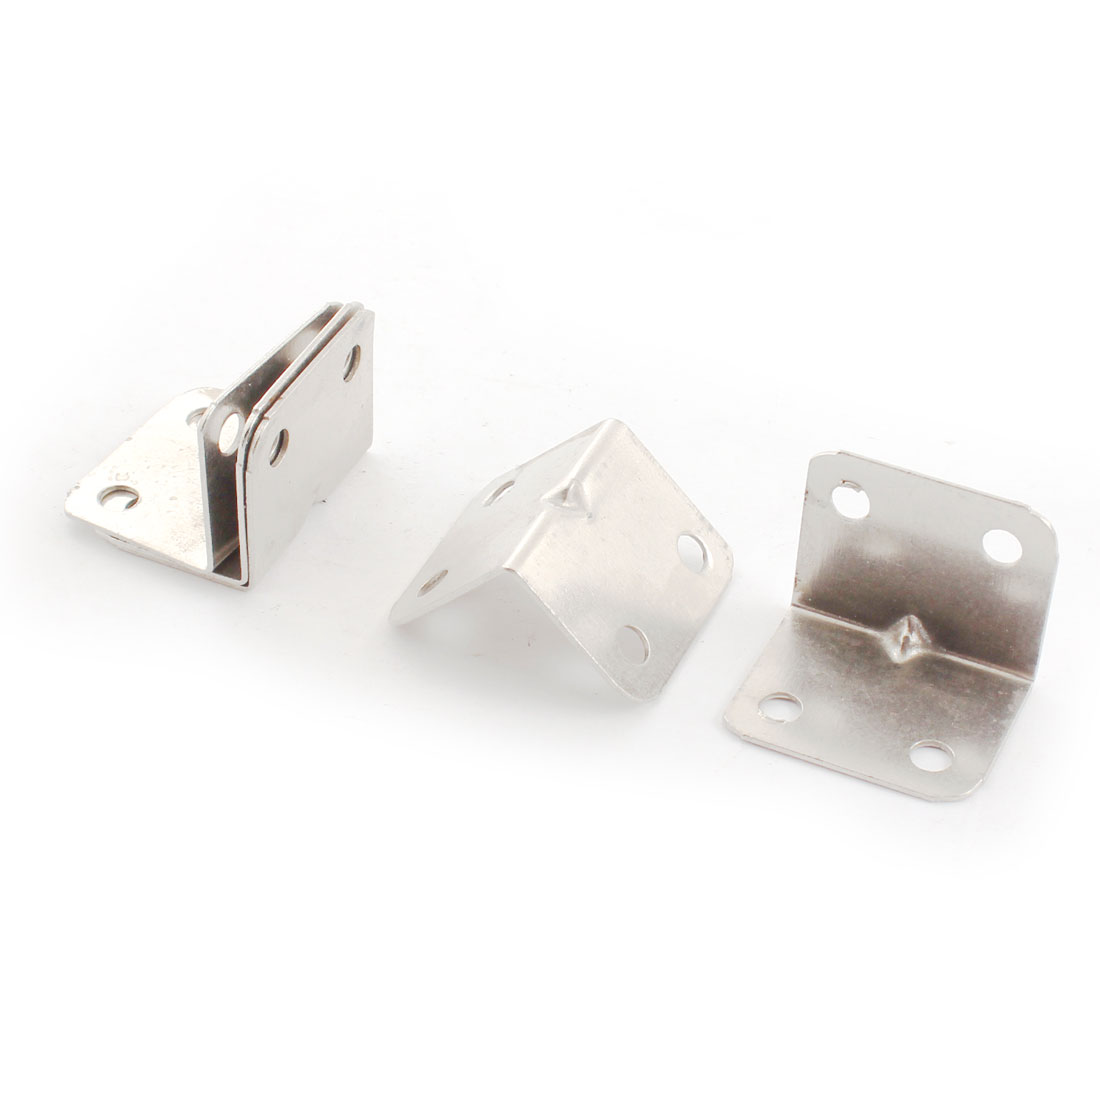 5Pcs 25mm x 25mm x 32mm Silver Tone Metal Corner Brace Joint Right Angle Bracket Shelf Support 6mm Hole